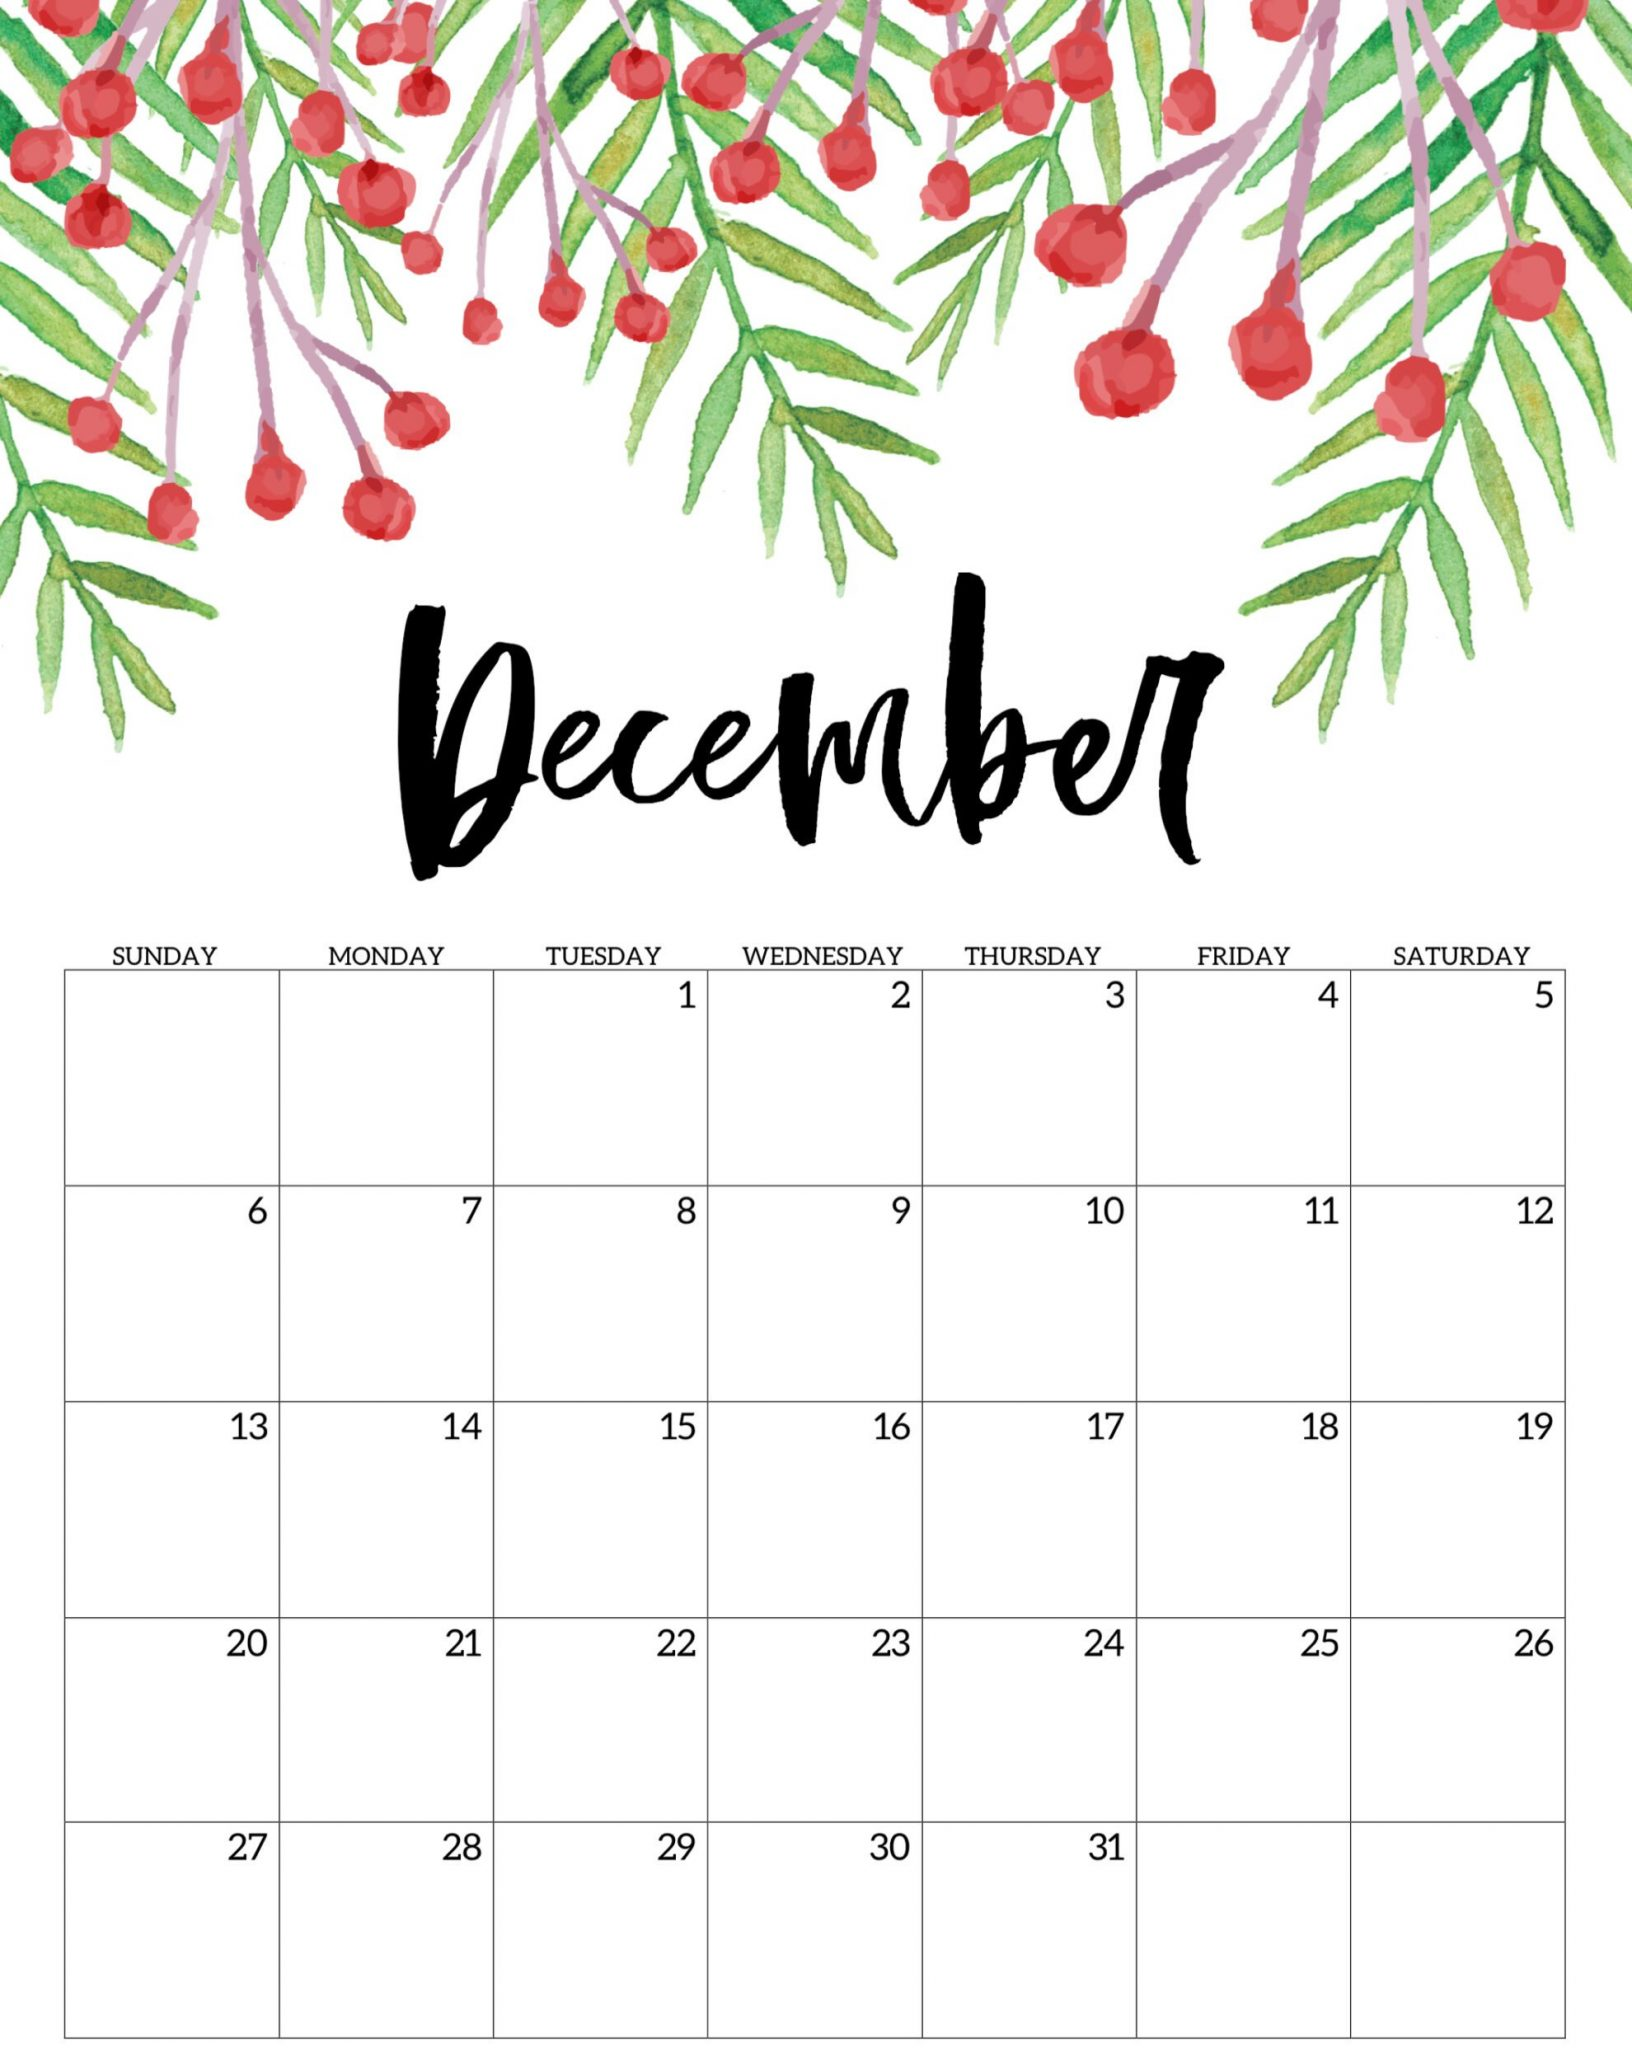 December Calendar Printable Blank Template With